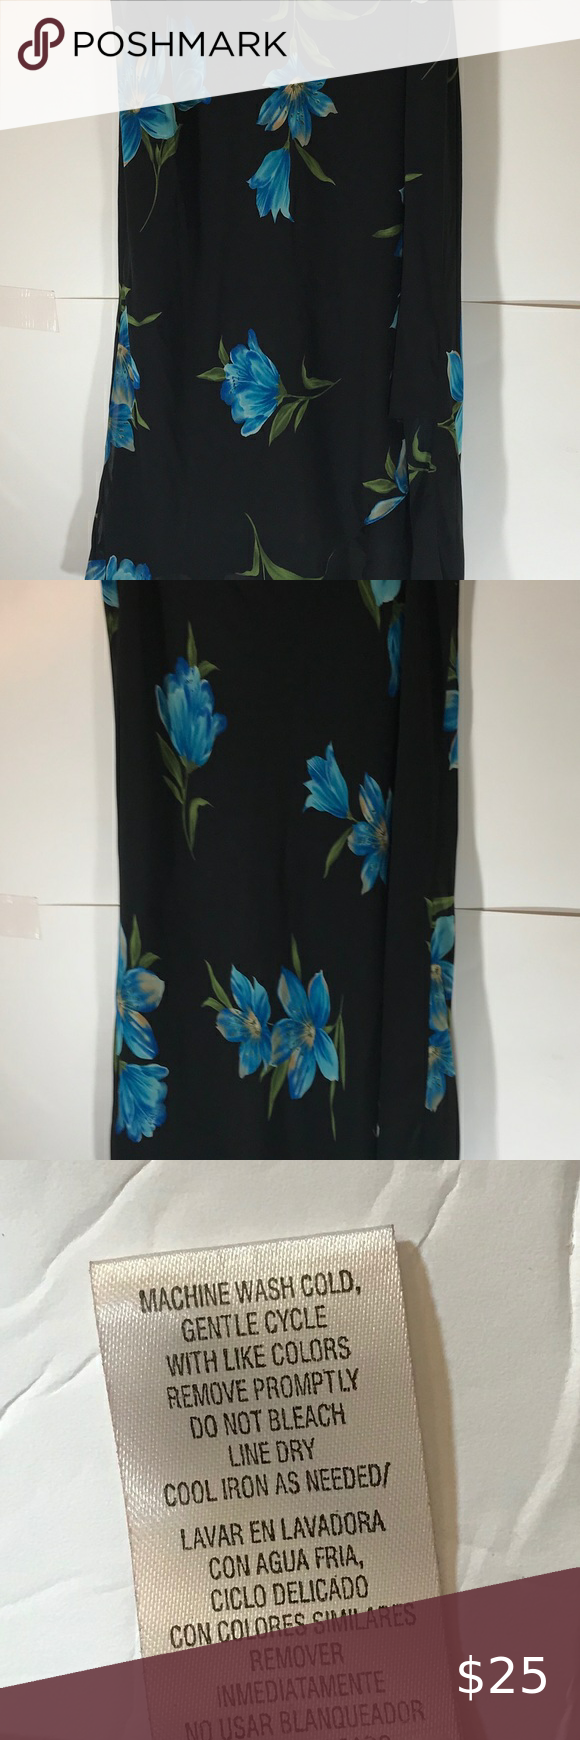 Cato Black Skirt With Turquoise And Green Flowers Plaid Pleated Mini Skirt Printed Long Skirt Red Dress Party